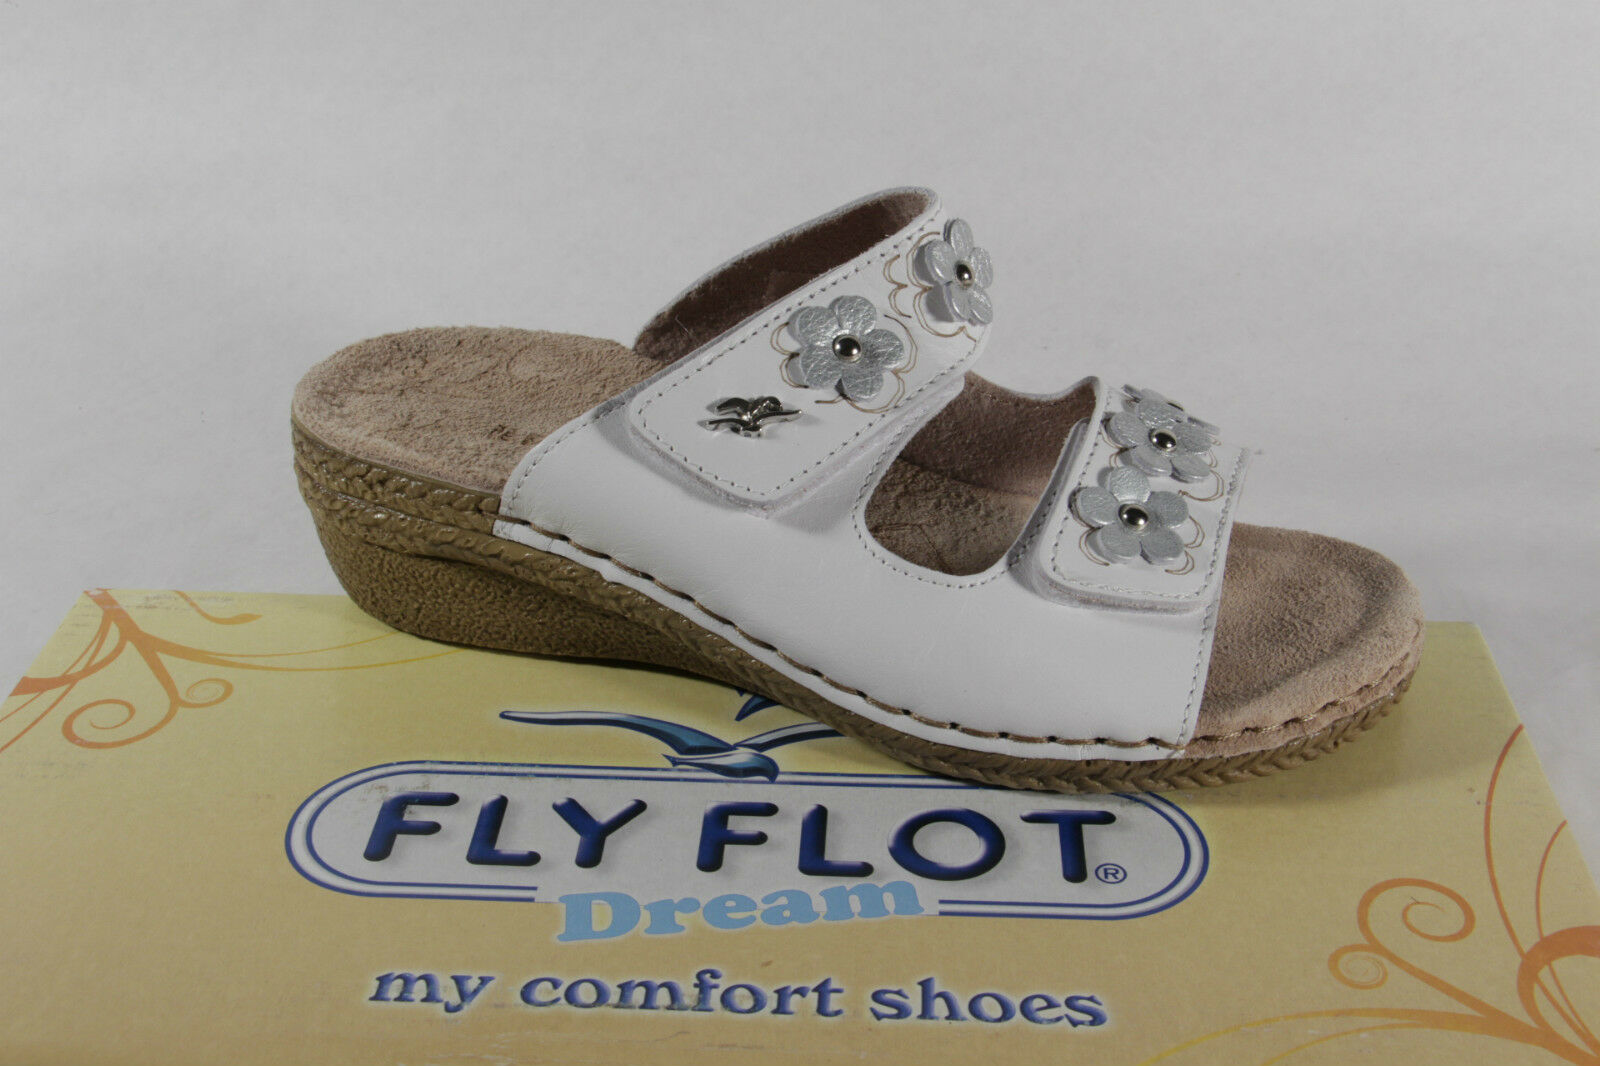 FLY FLOT ladies slippers Slippers House House House shoes Leather White Touch Fastener NEW b4a410